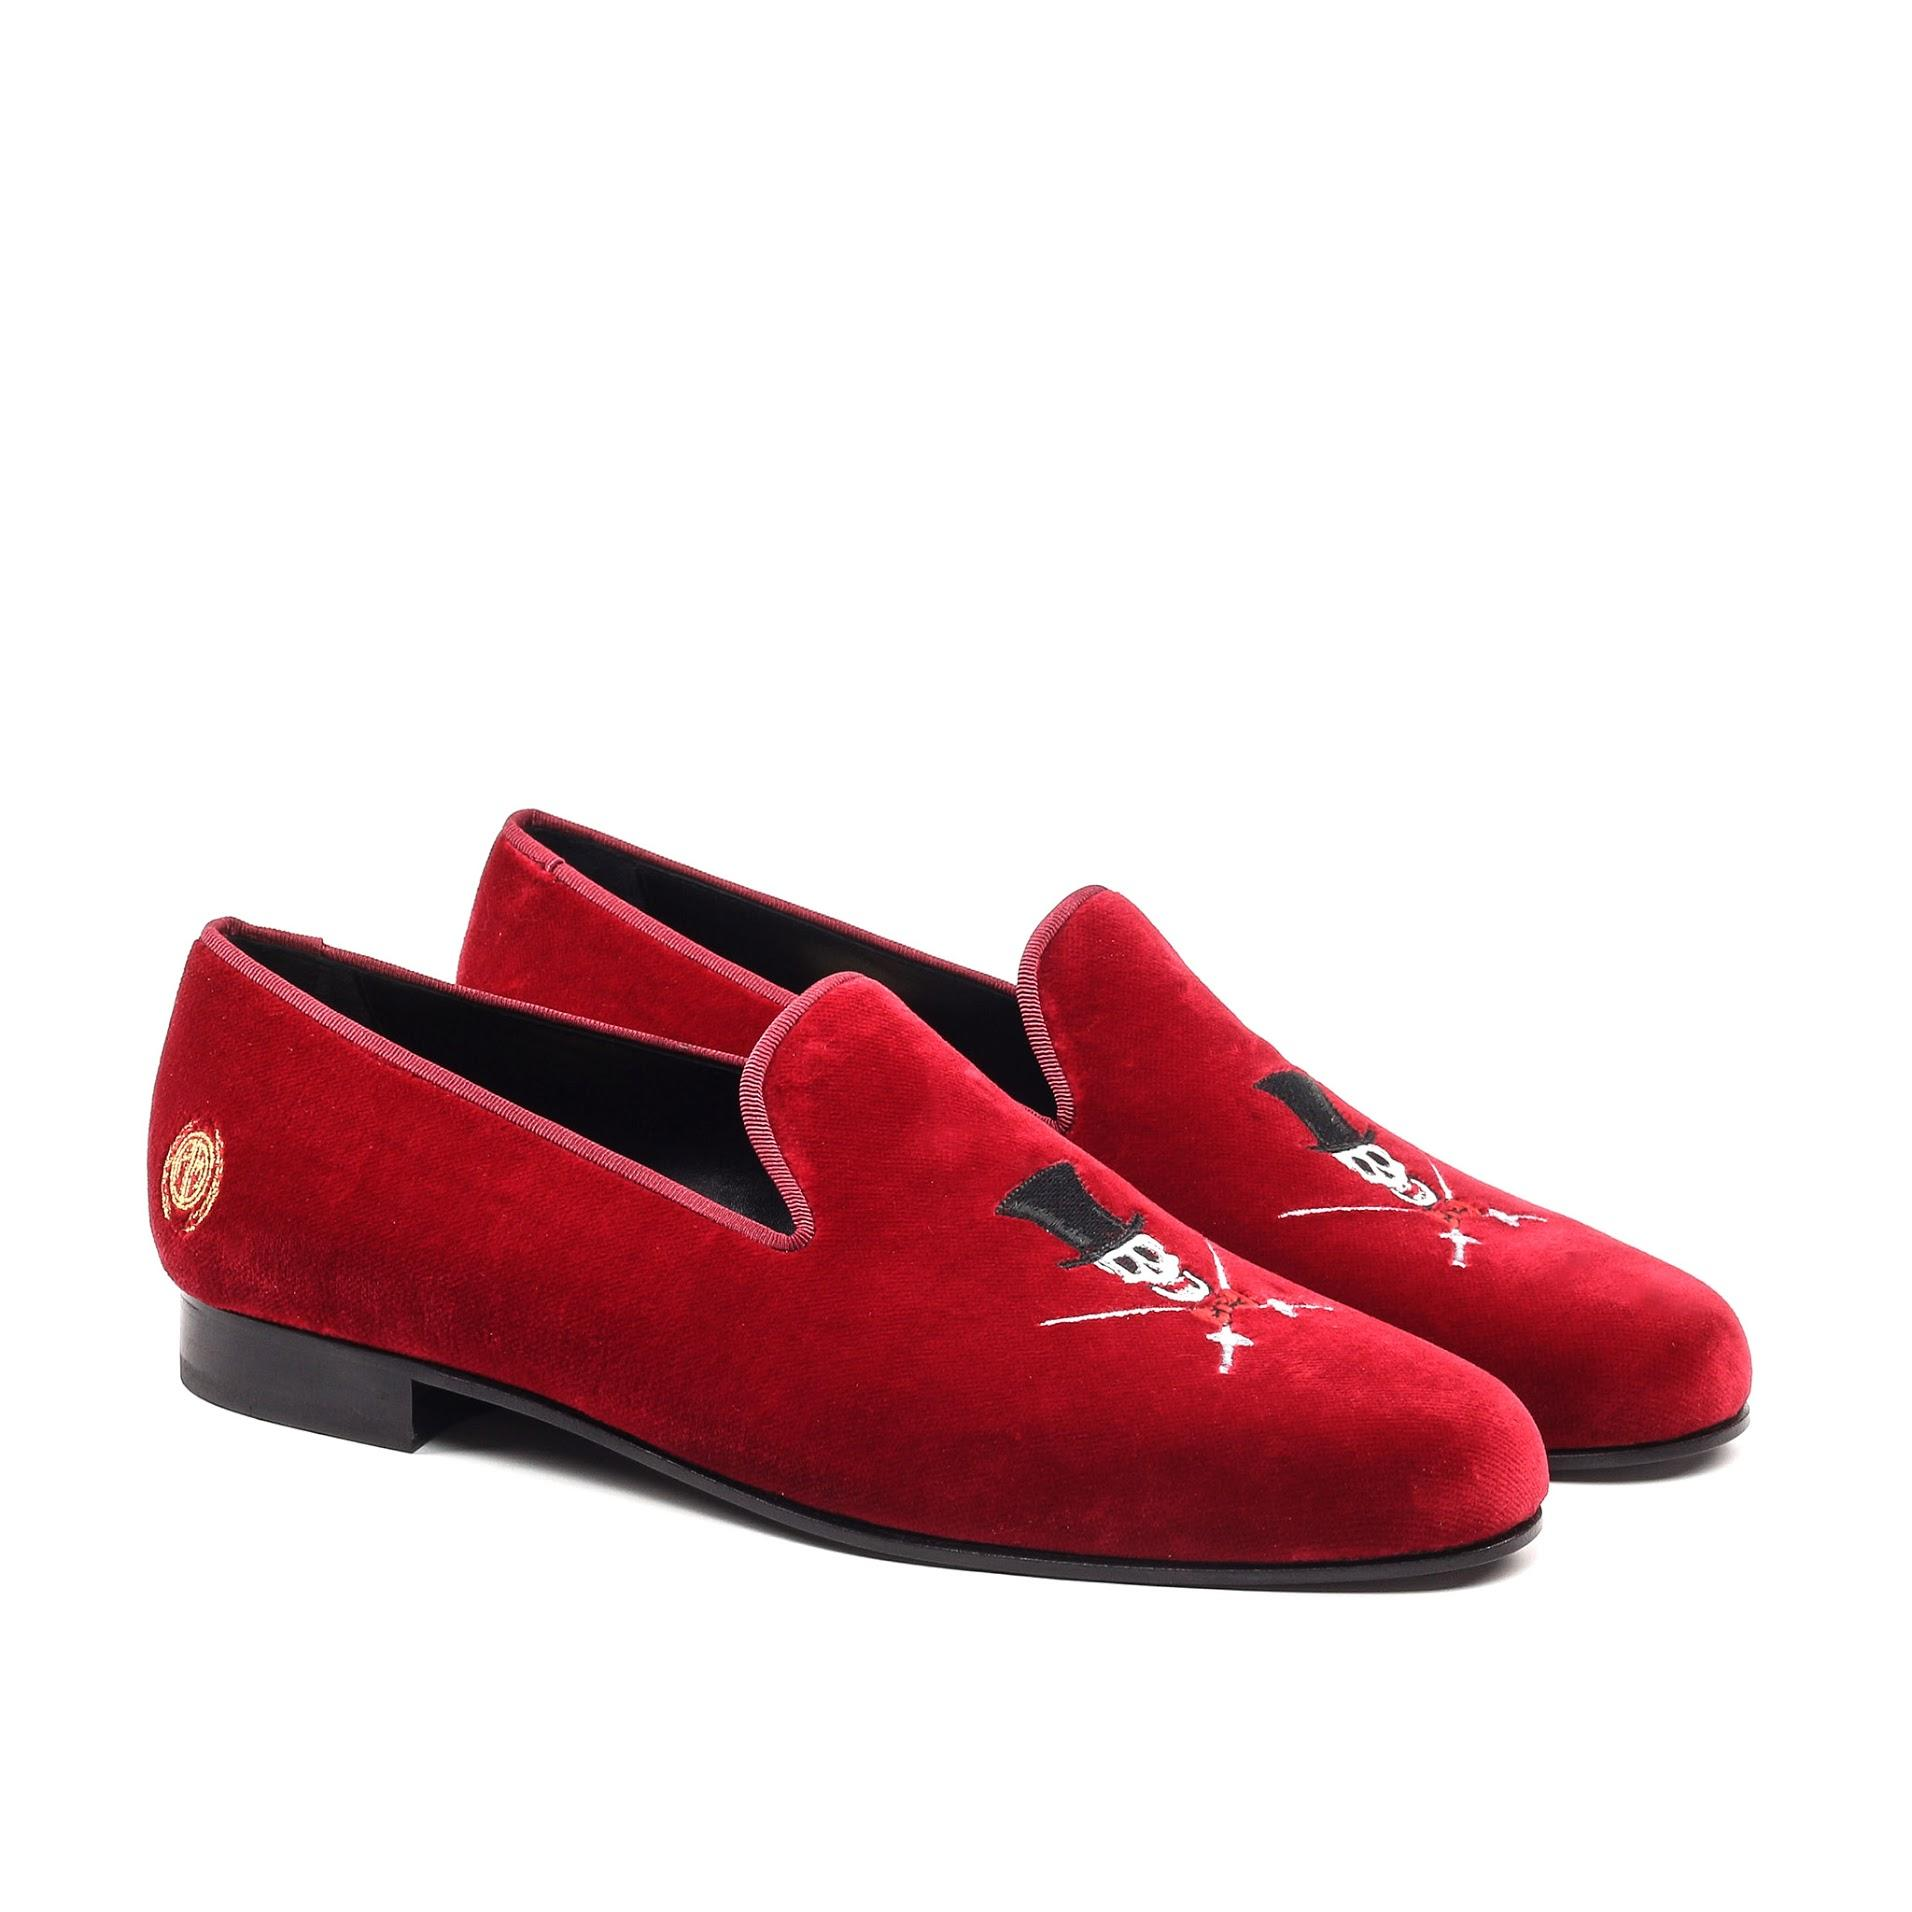 Manor of London 'The Duke of Death' Red Velvet Slippers Luxury Custom Initials Monogrammed Front Side View